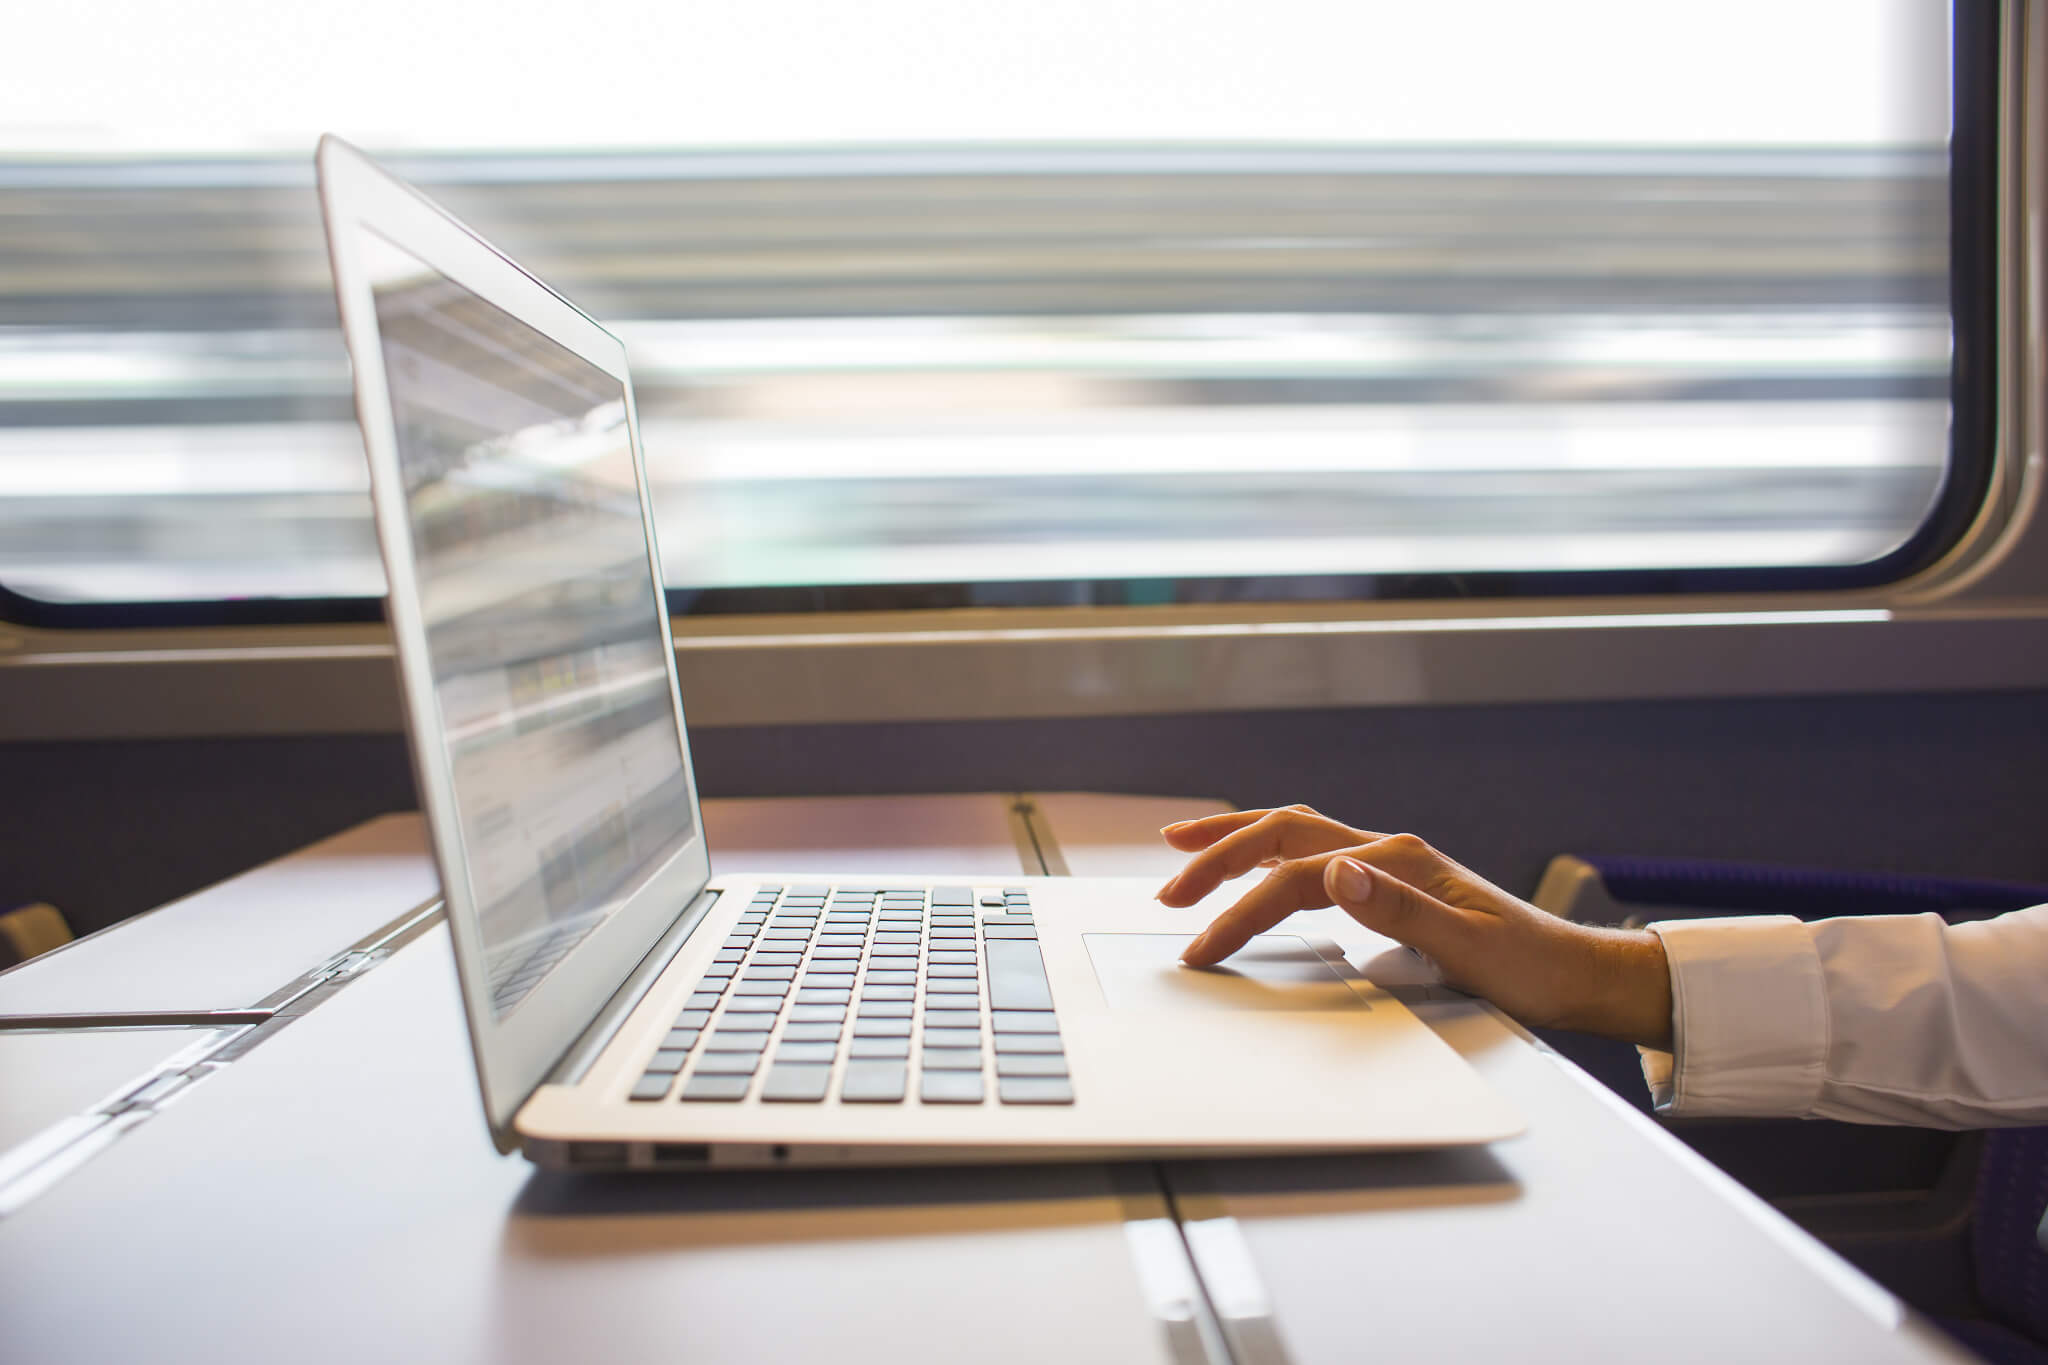 Passenger WiFi on Trains